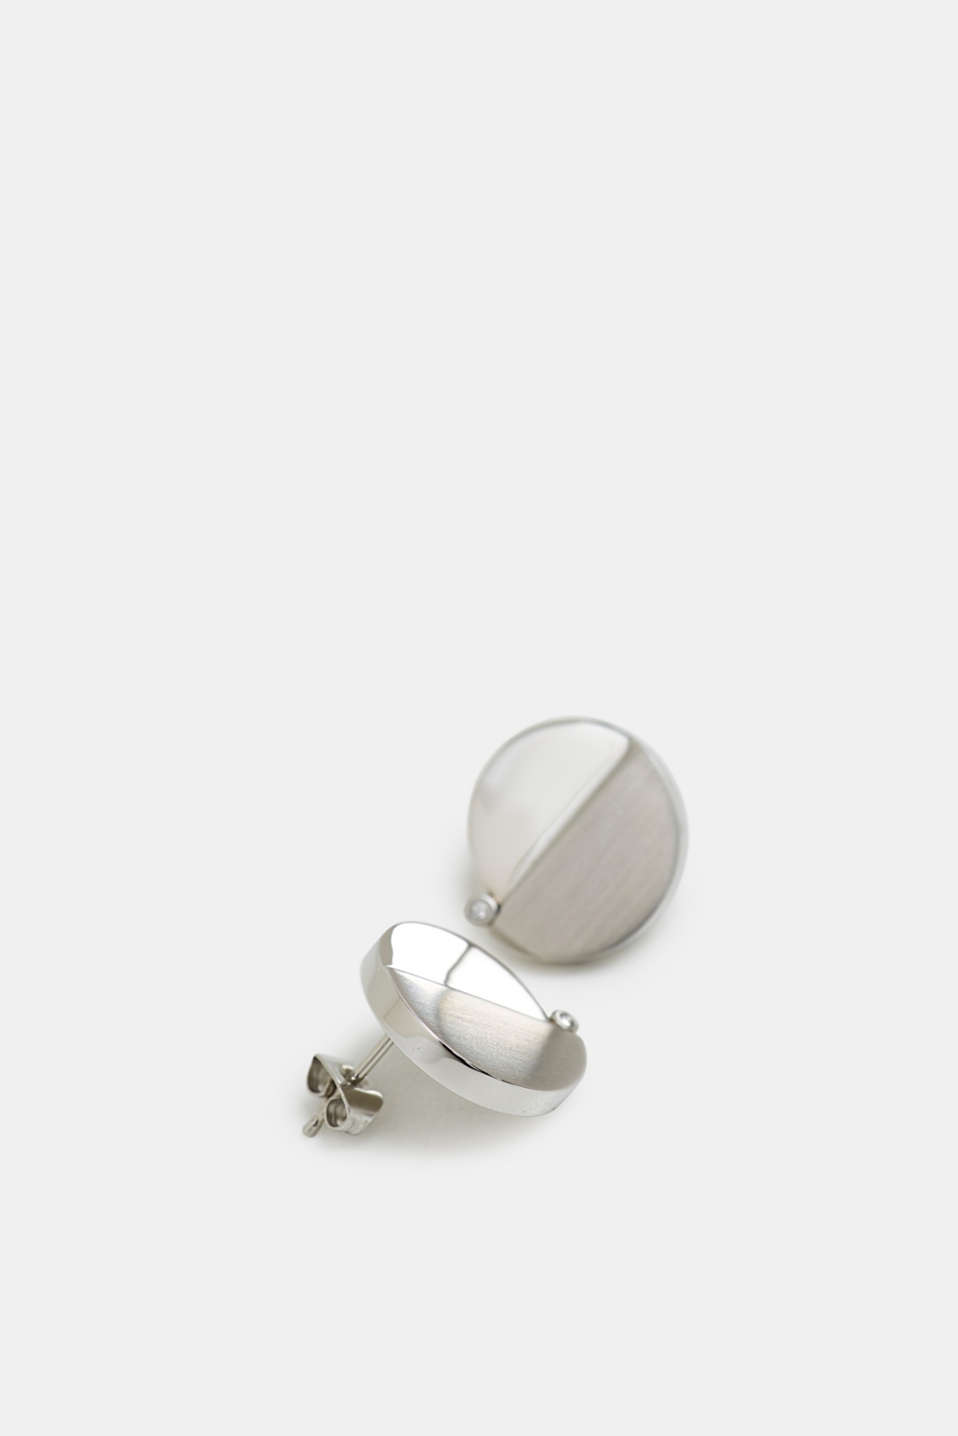 Stainless steel stud earrings with zirconia trim, SILVER, detail image number 1